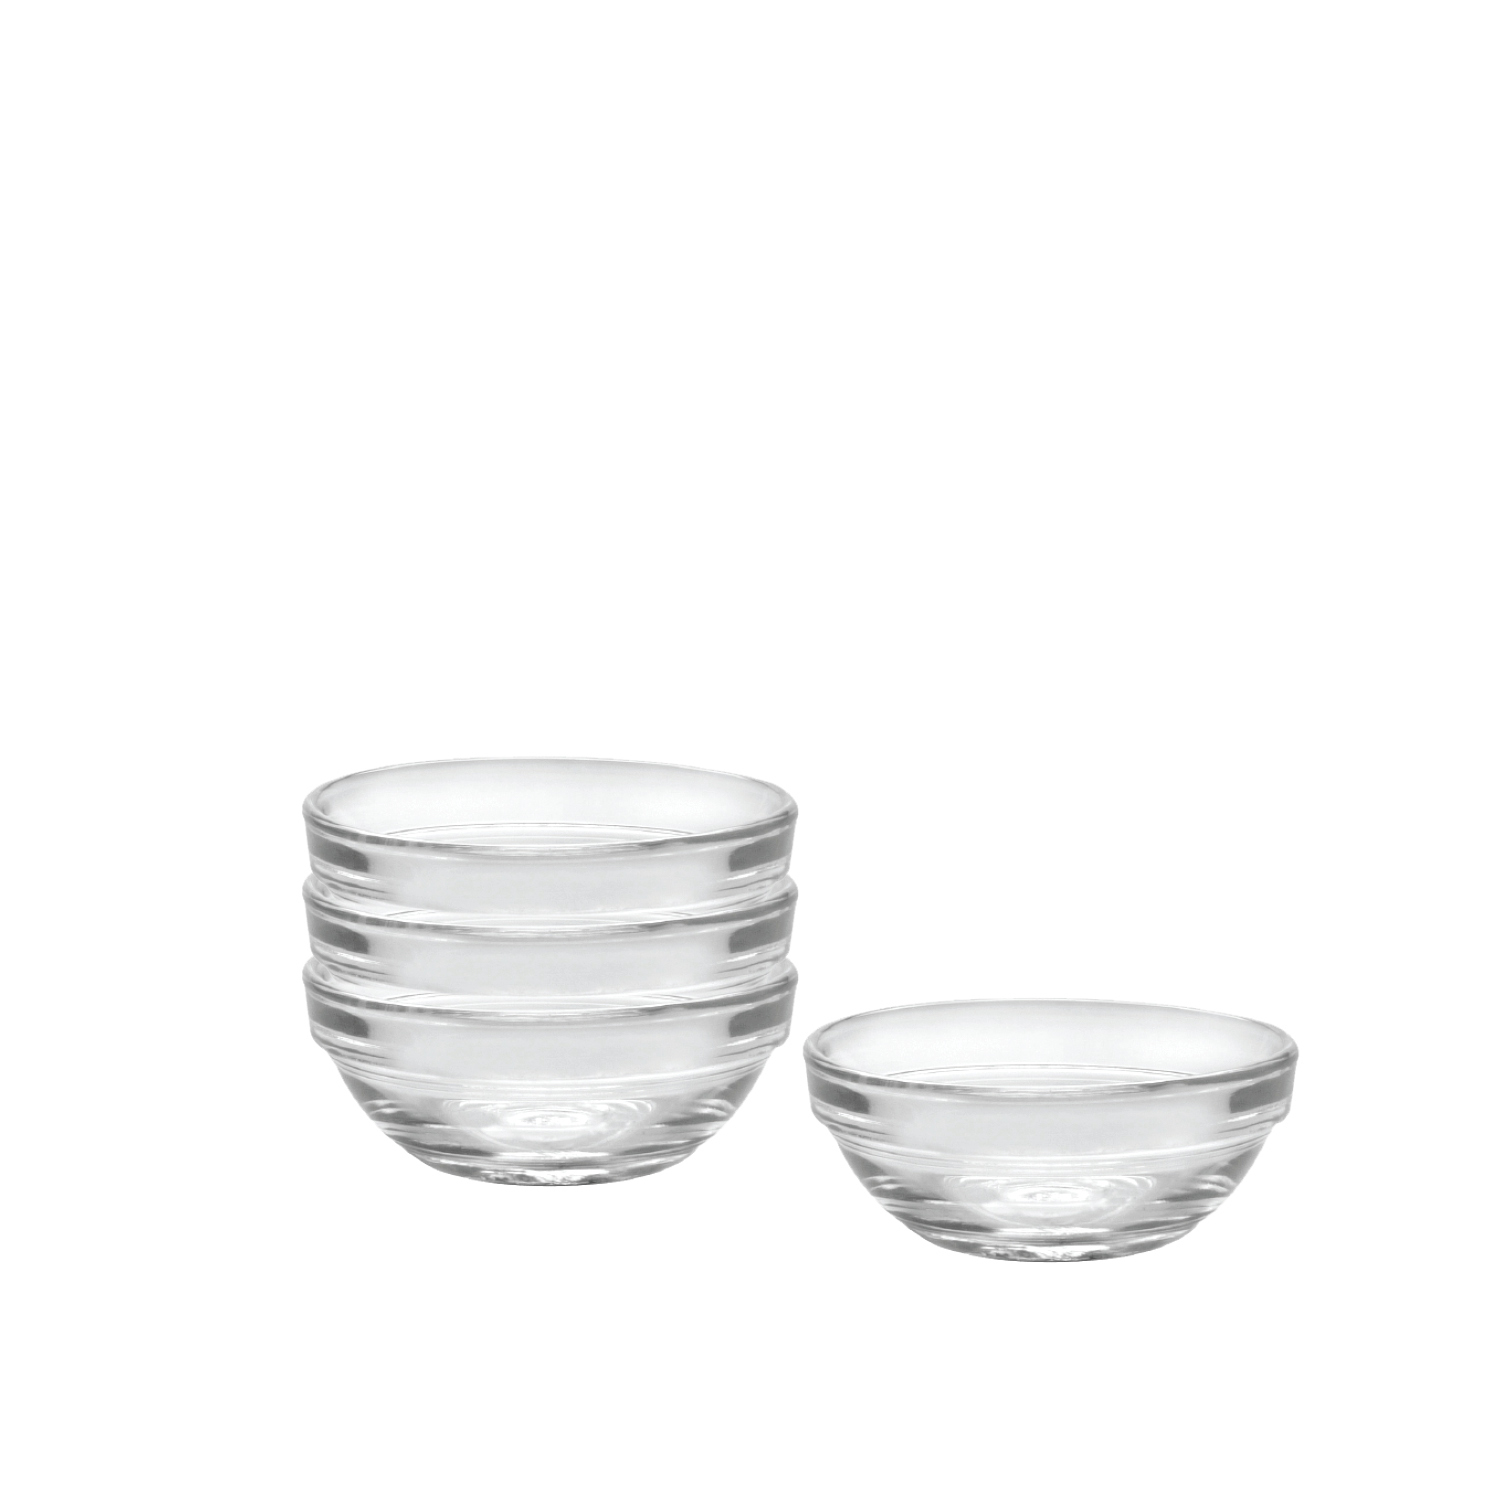 Duralex Lys Clear 2 Ounce Stackable Bowl, Set of 4